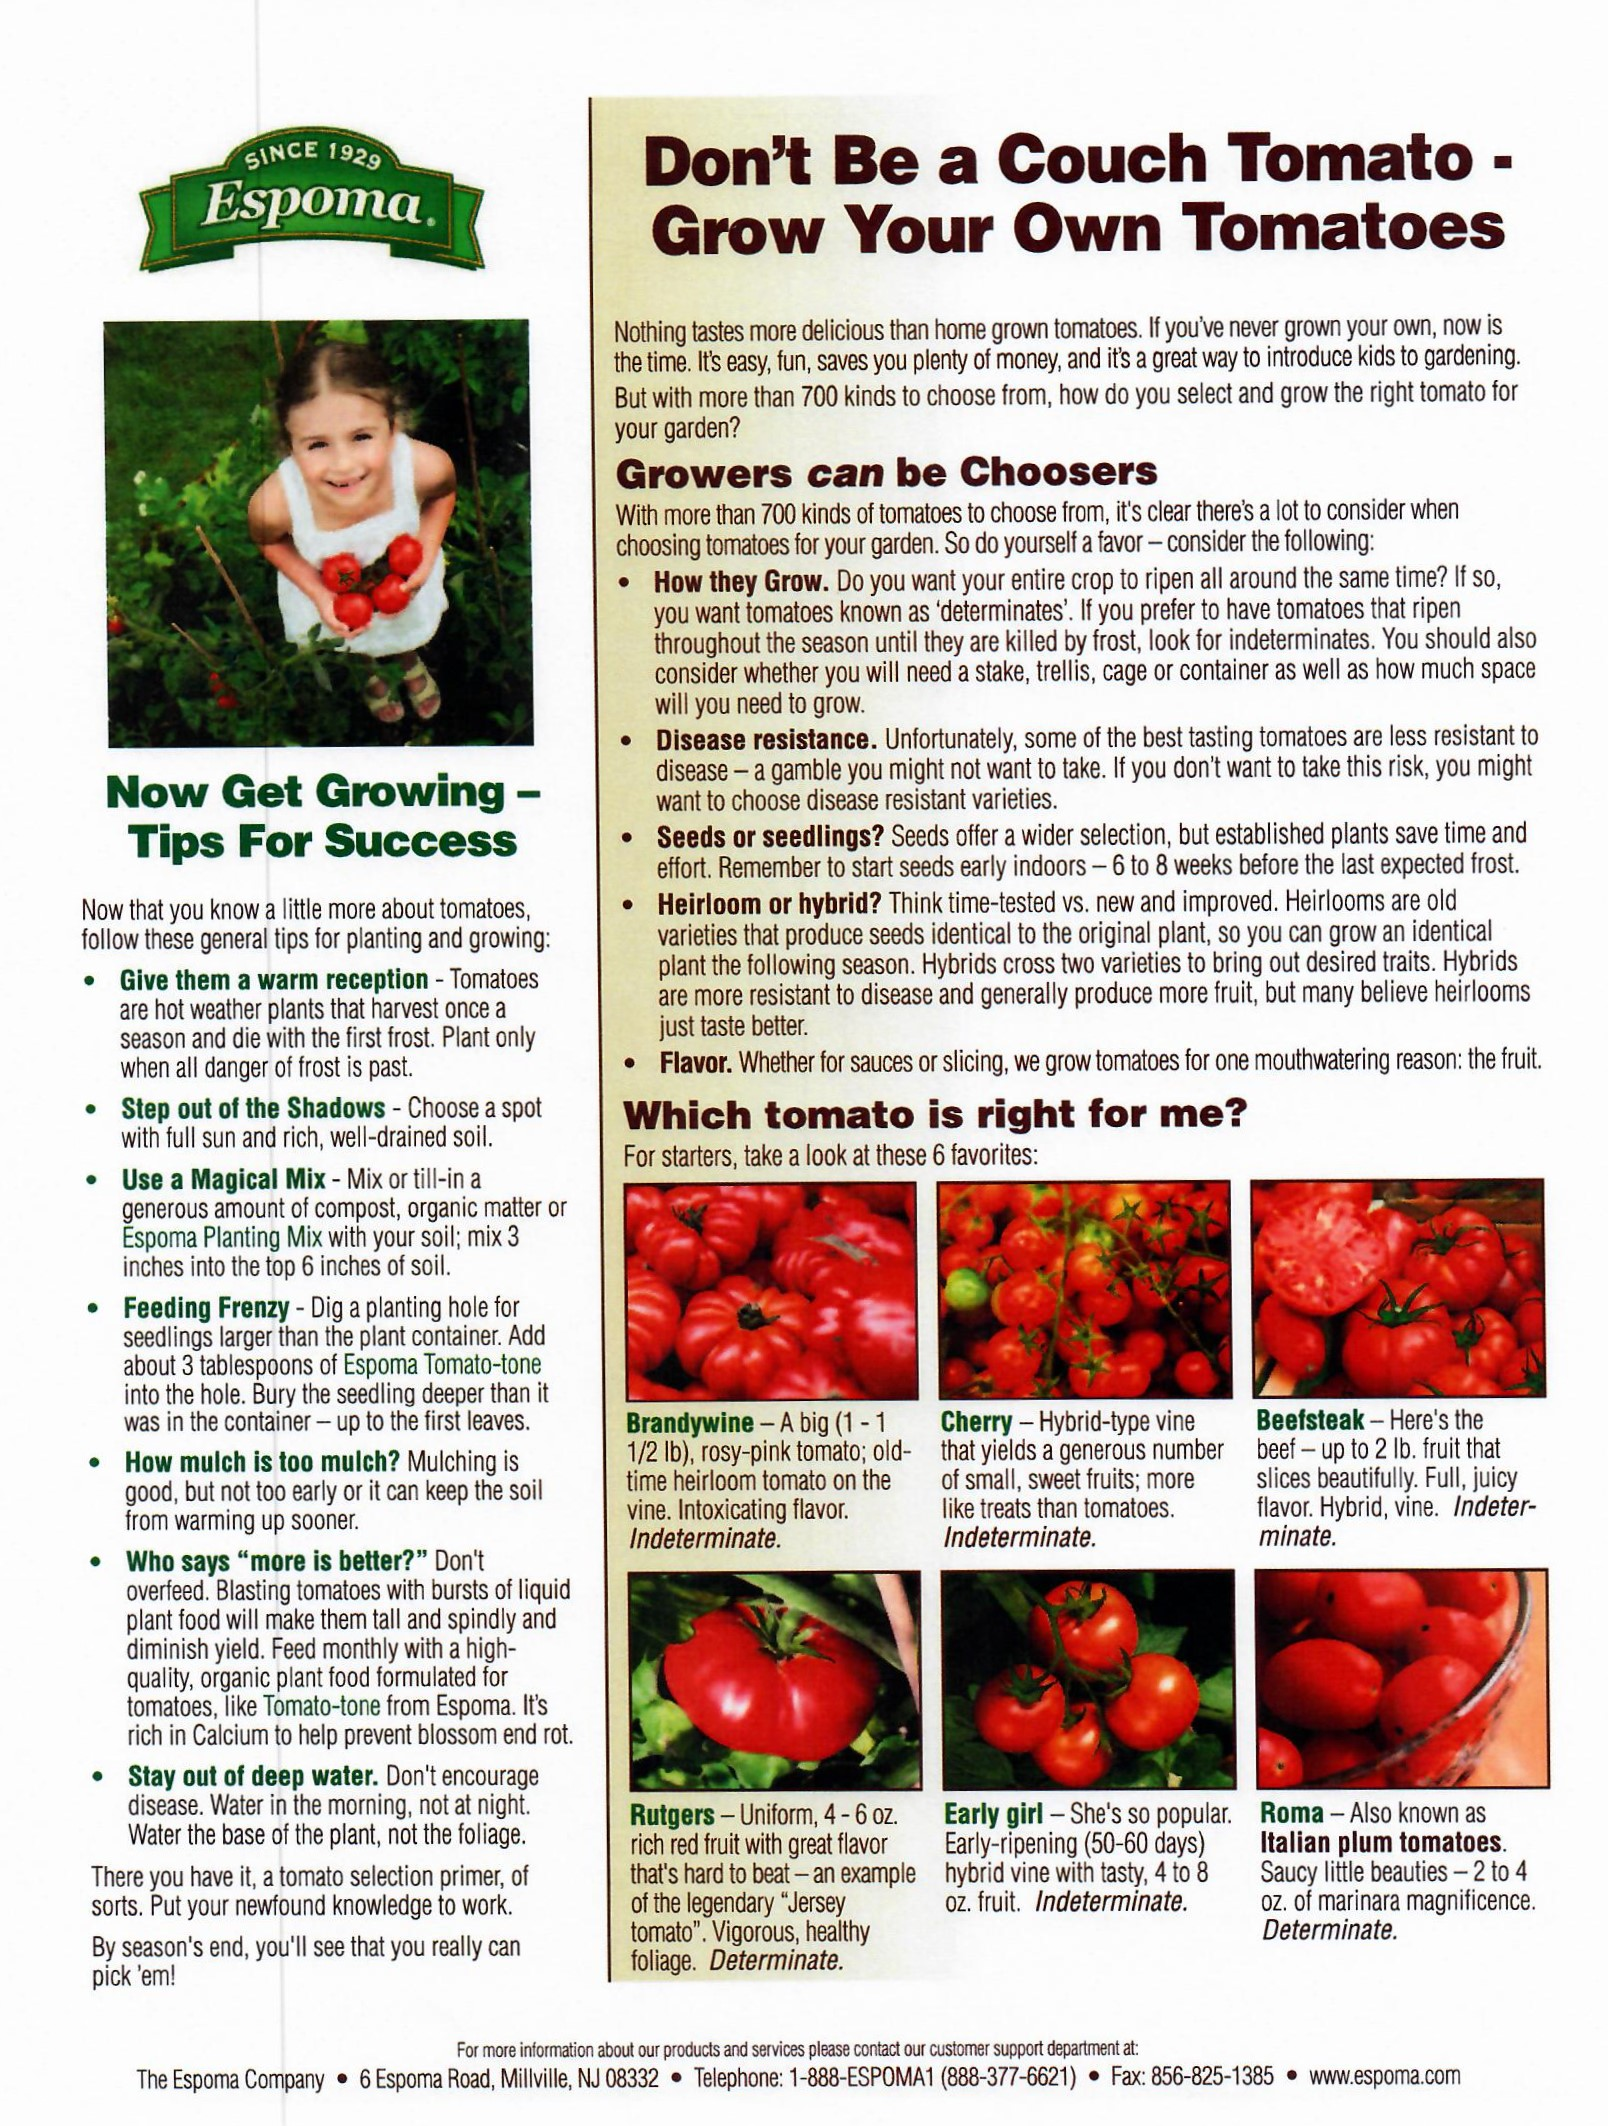 grow your own tomatoes.jpg